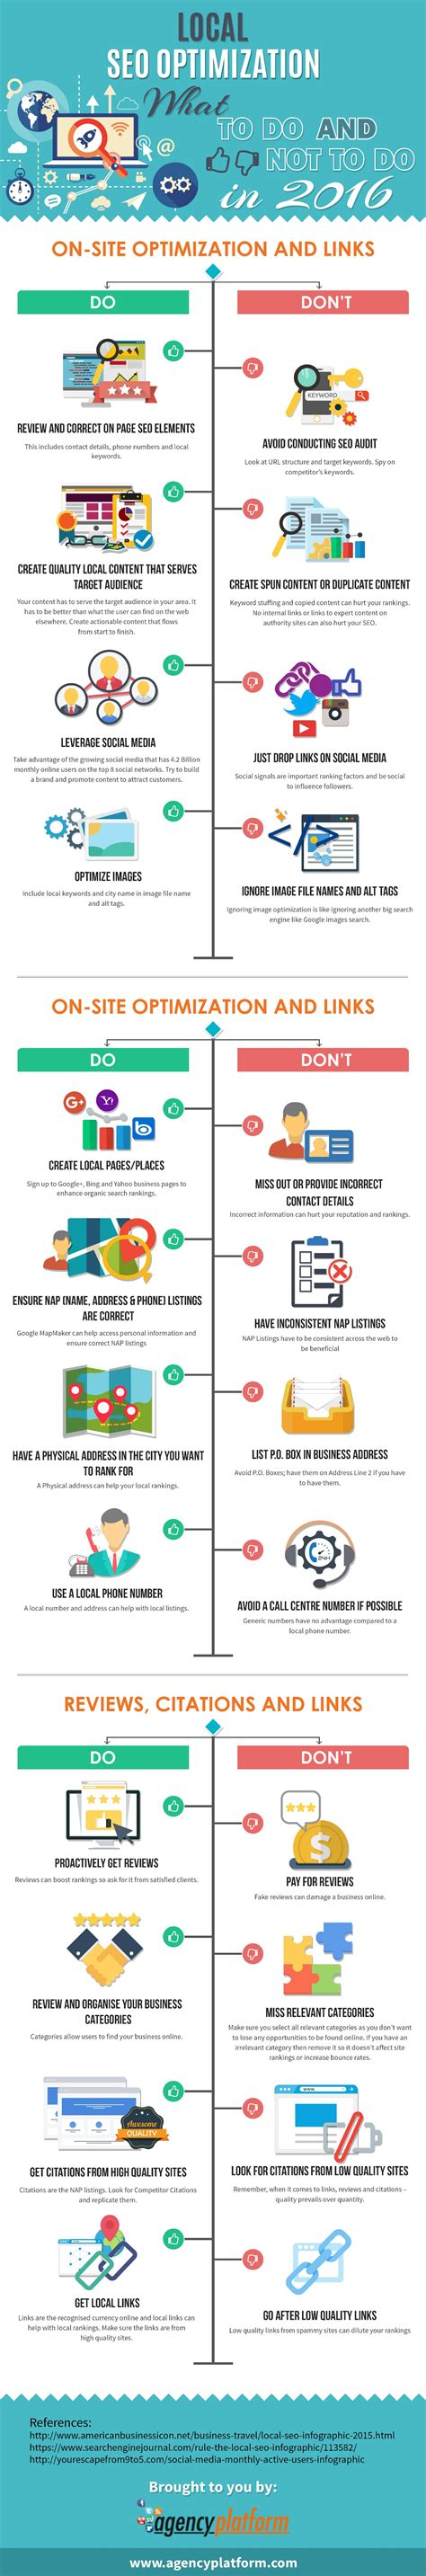 local search optimization how local seo can help you be more searchable in your area